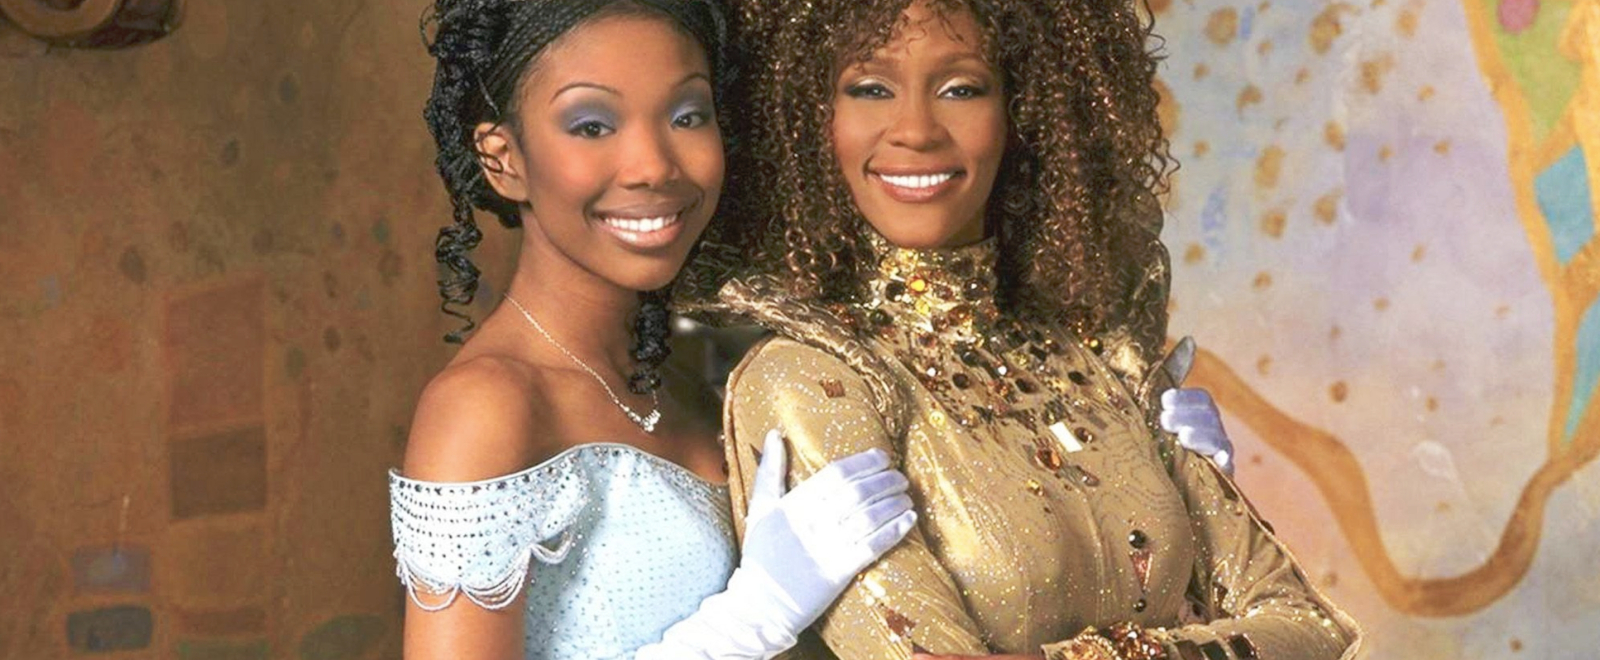 Disney's 'Cinderella' Musical With Brandy And Whitney Houston Is Finally Coming To Disney+